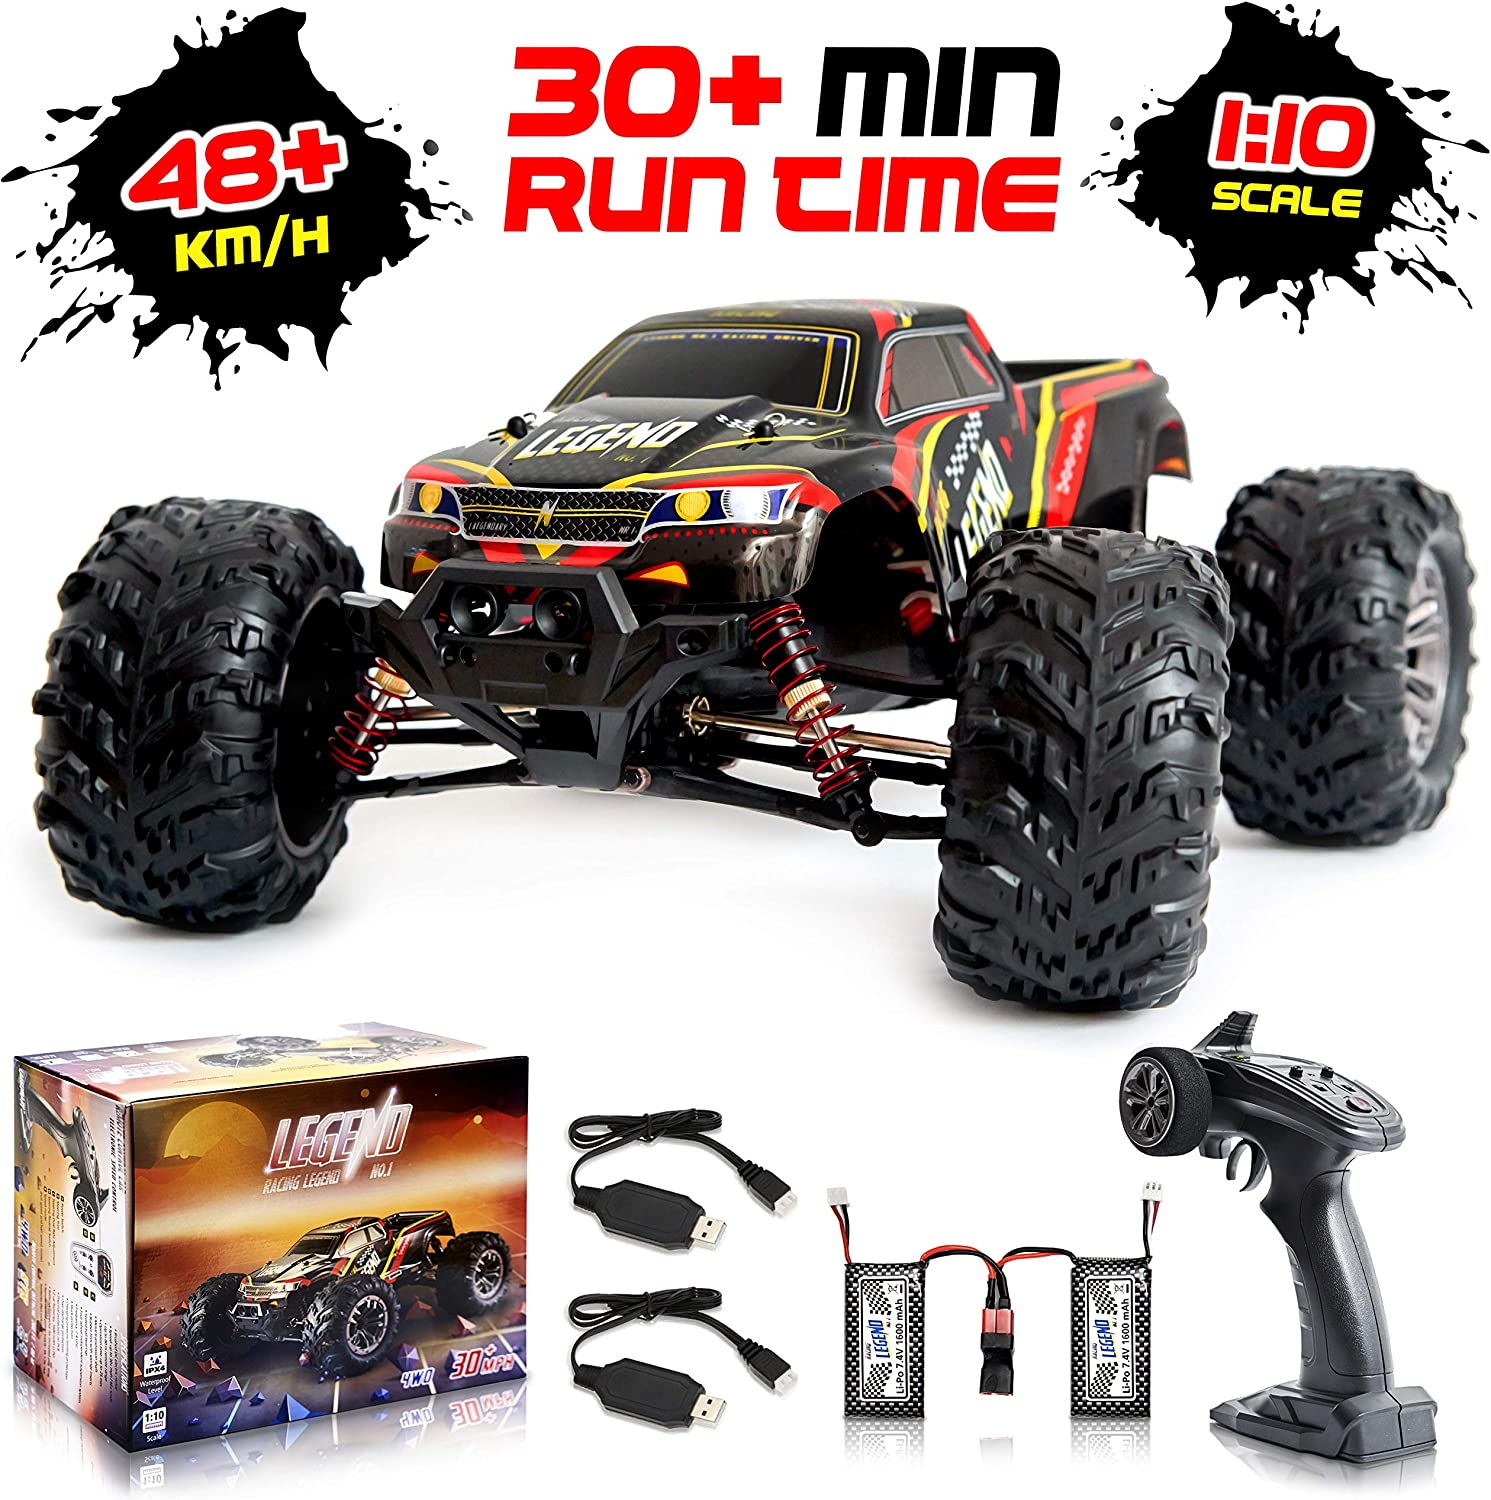 1:10 Scale Large RC Cars 48+ Kmh Speed - All-Terrain Waterproof Toys Trucks for Kids and Adults